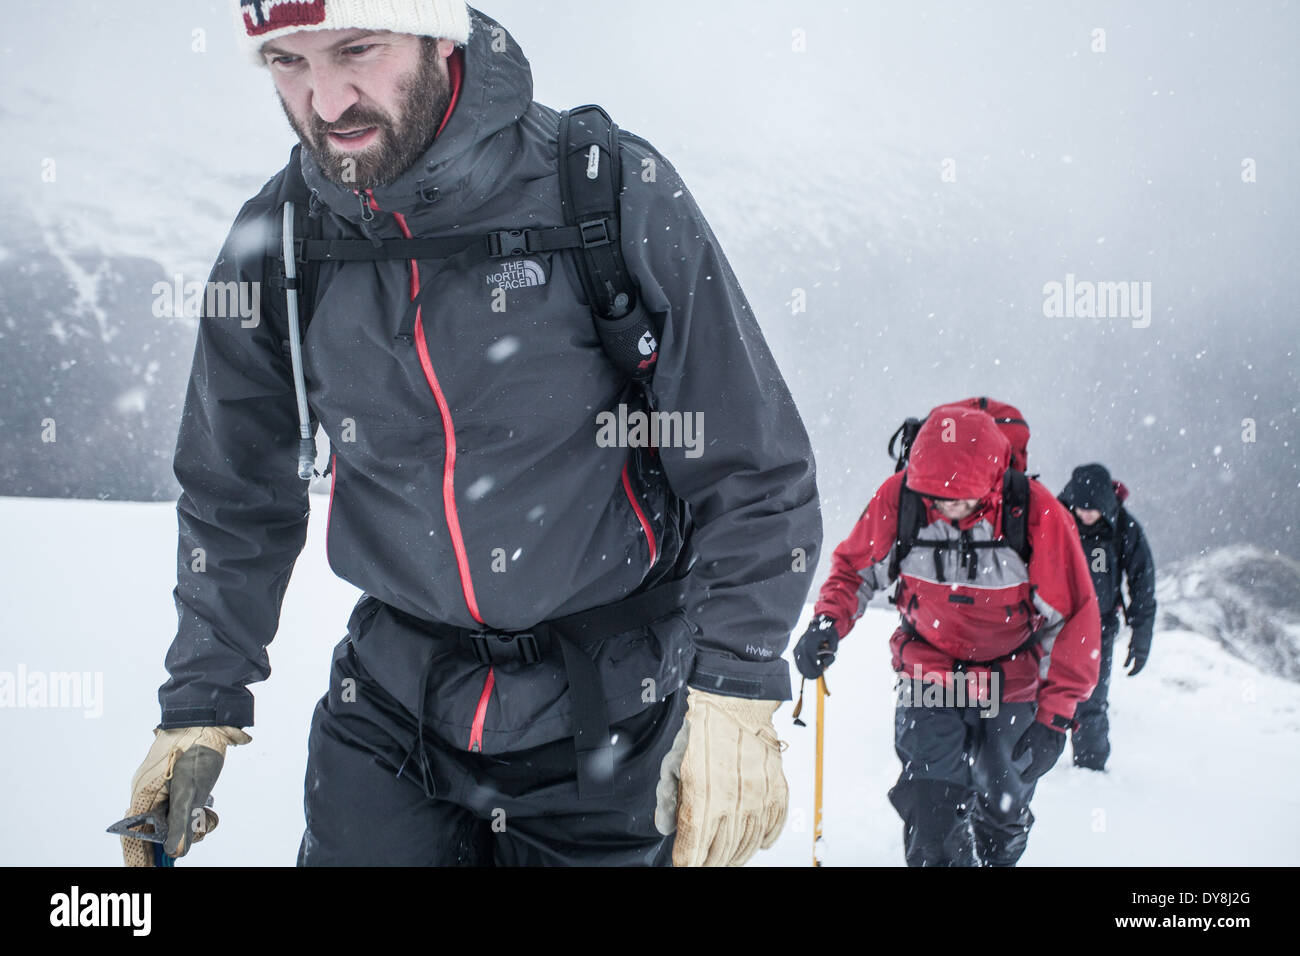 Winter mountaineering in the Scottish highlands - Stock Image